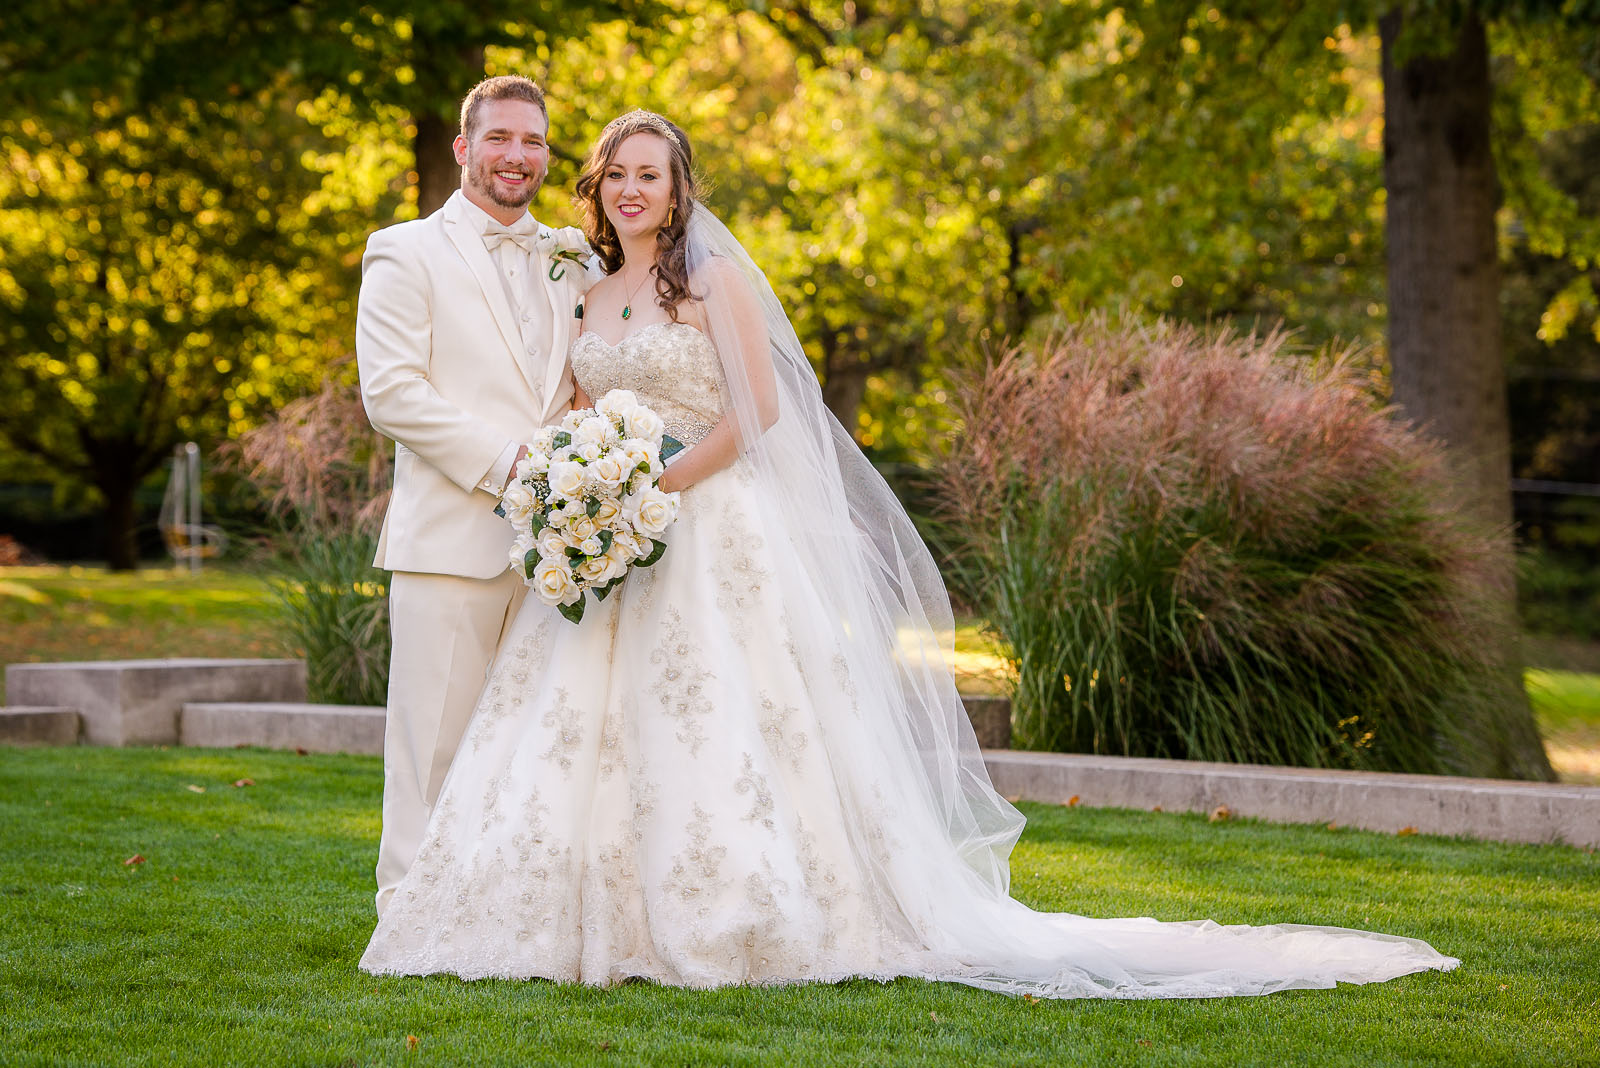 Eric_and_Christy_Photography_Blog_Wedding_Eva_Andrew-26